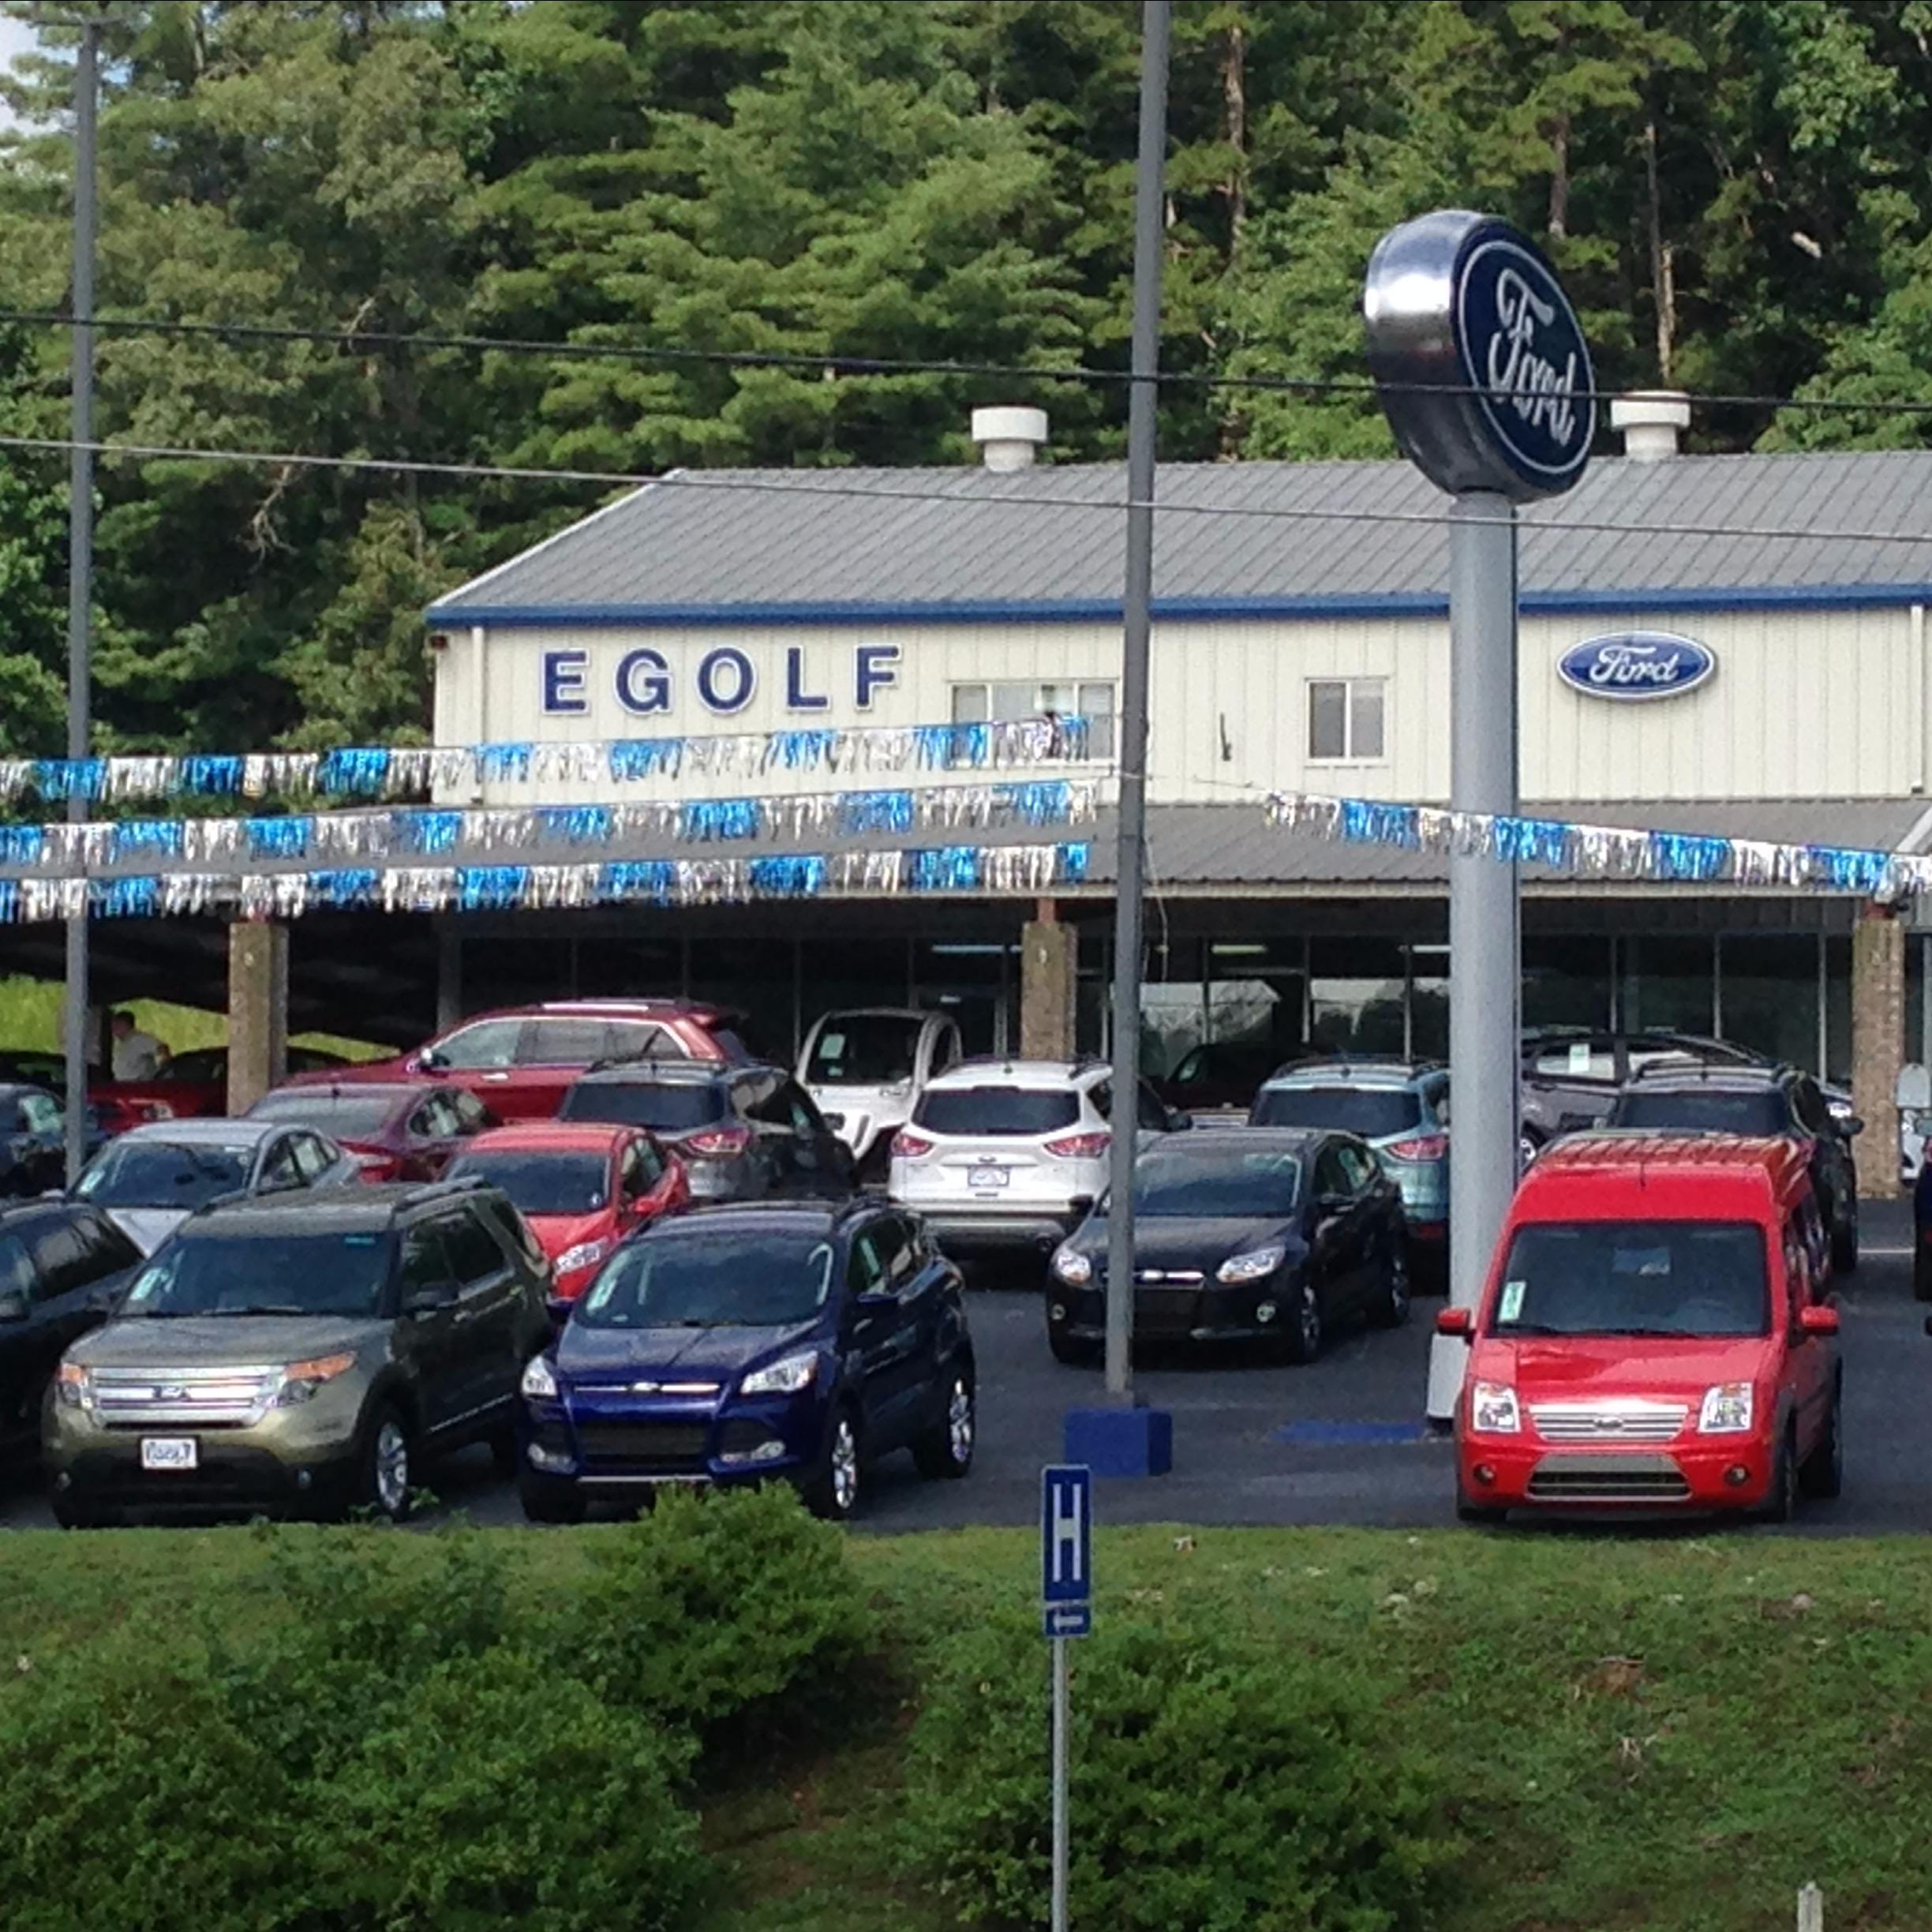 egolf ford of brevard in brevard nc used cars yellow